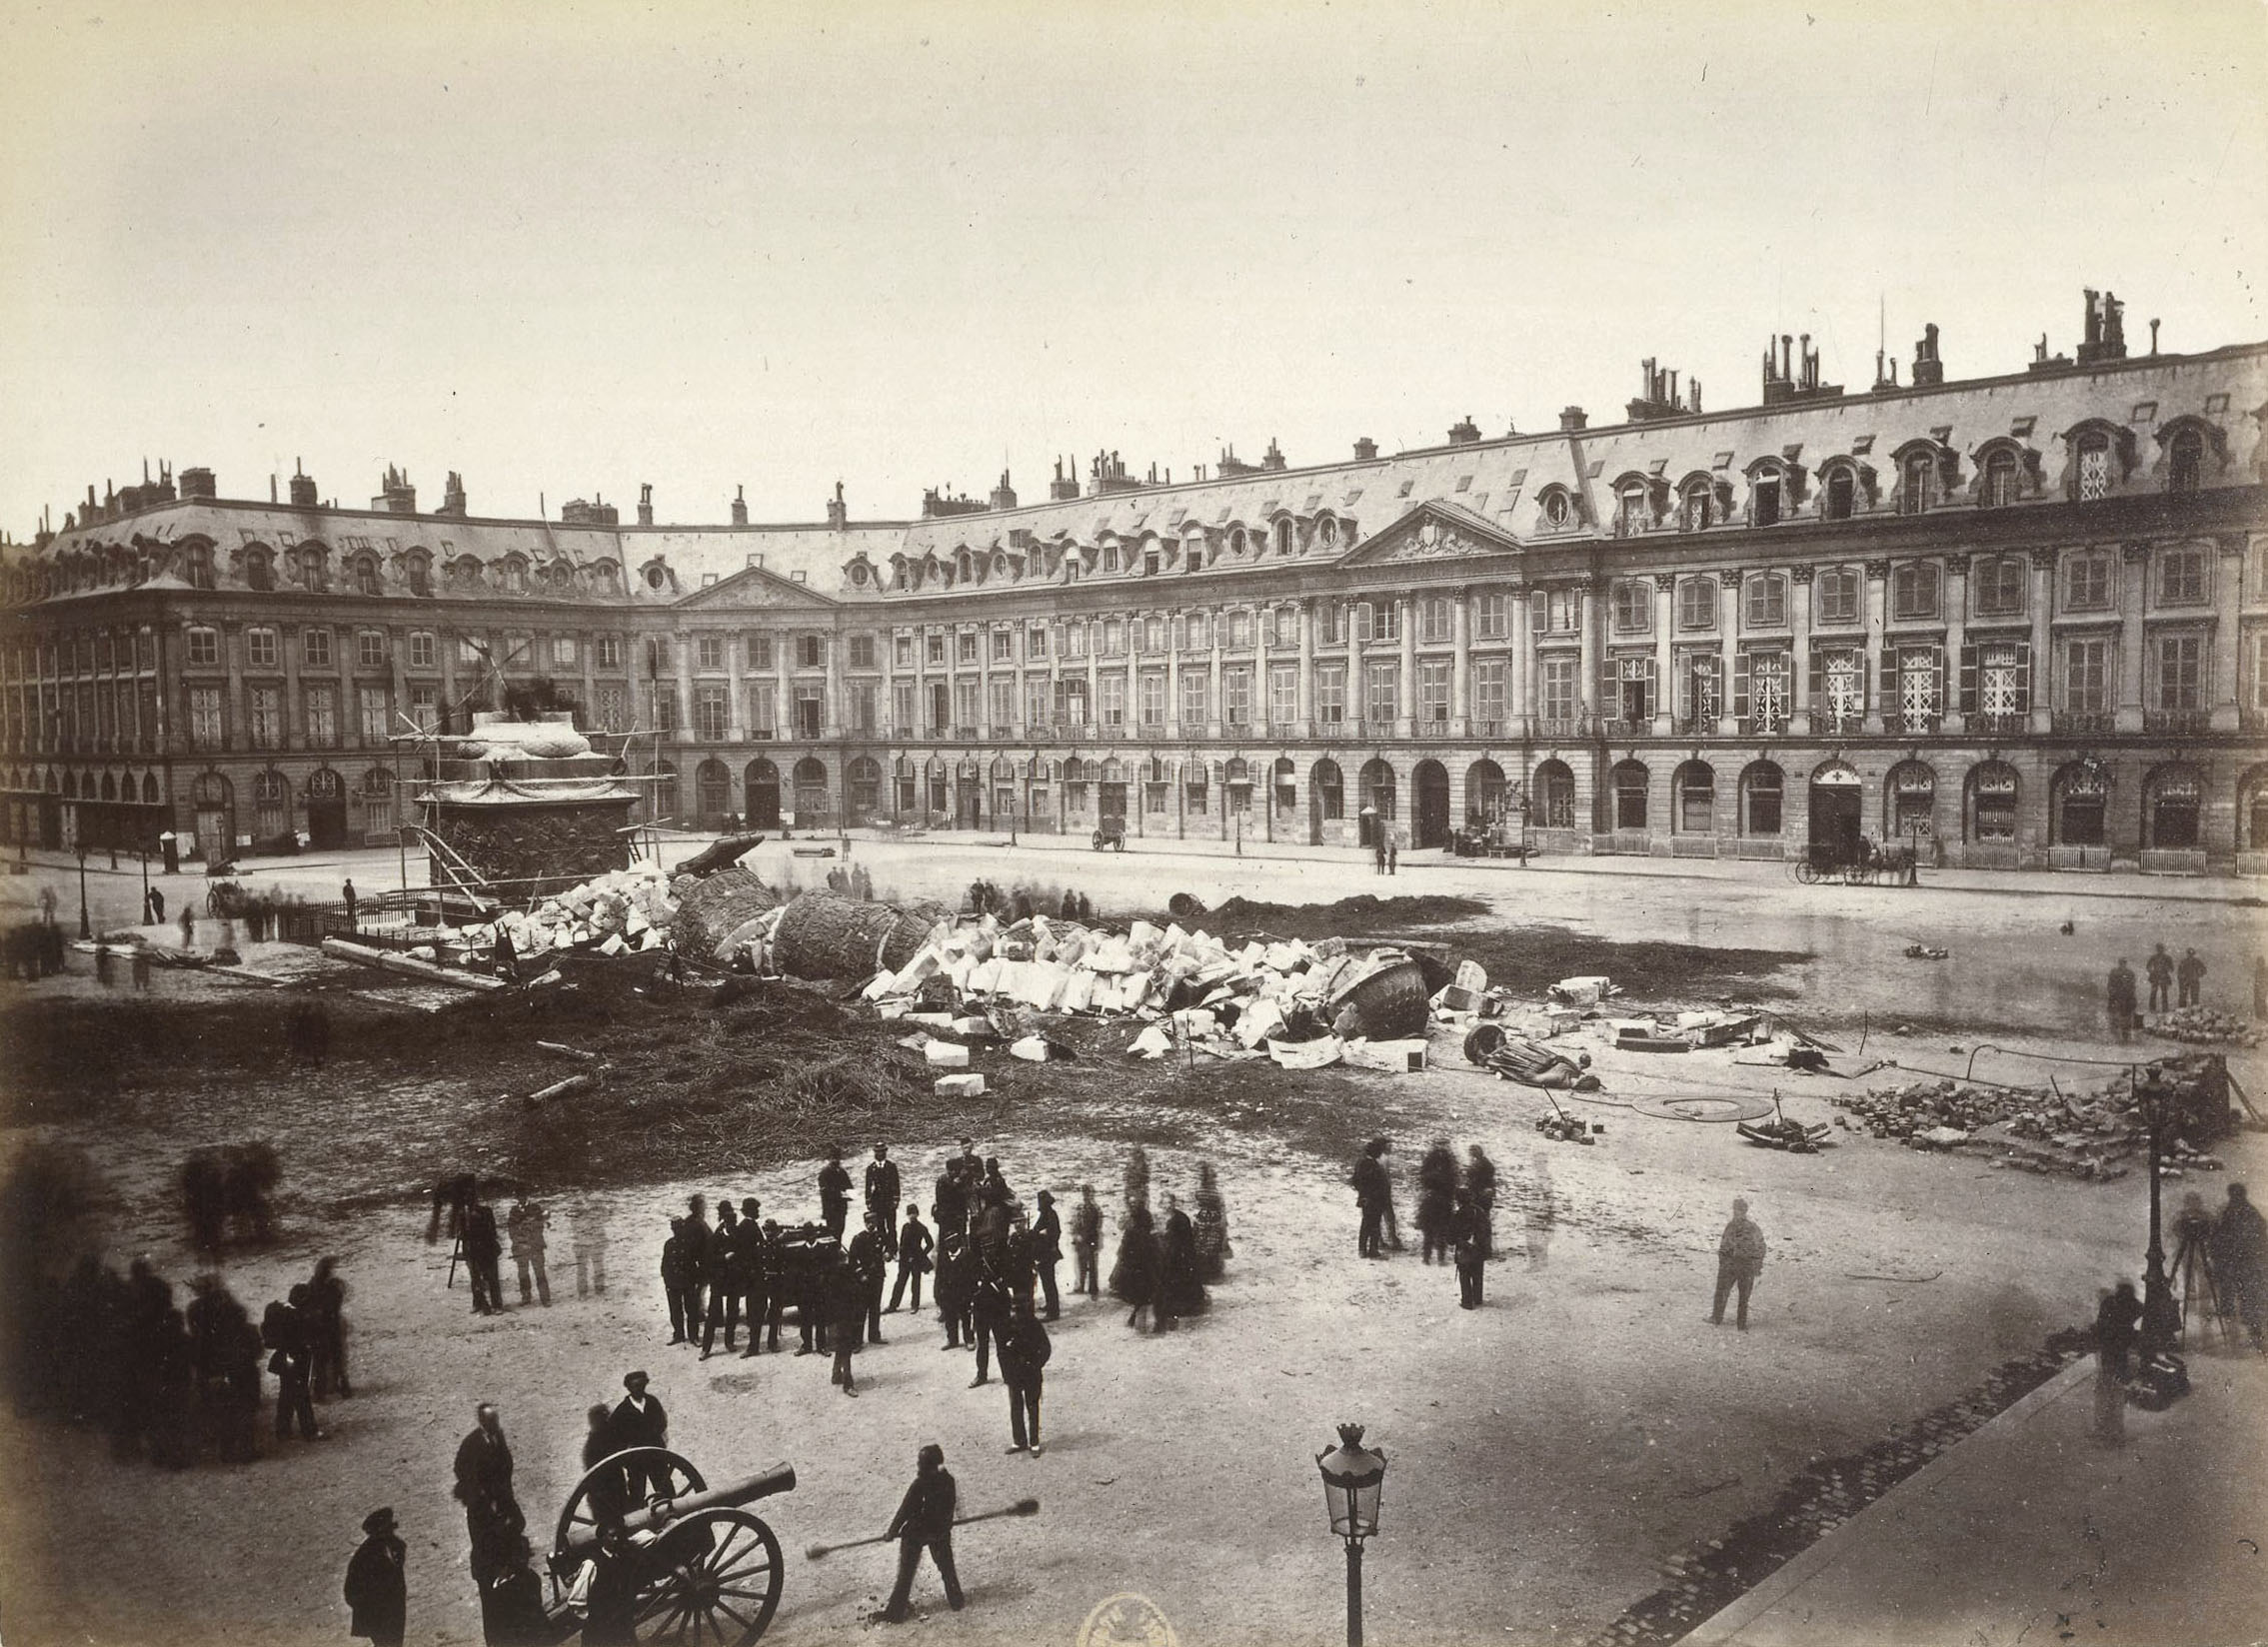 Ruins of Paris in 1871 : destruction of the Vendome column during the Paris Commune, Paris, Bibliothèque nationale de France (BnF). Photo : Braquehais Bruno (1823-1875). © BnF, Dist. RMN-Grand Palais / image BnF